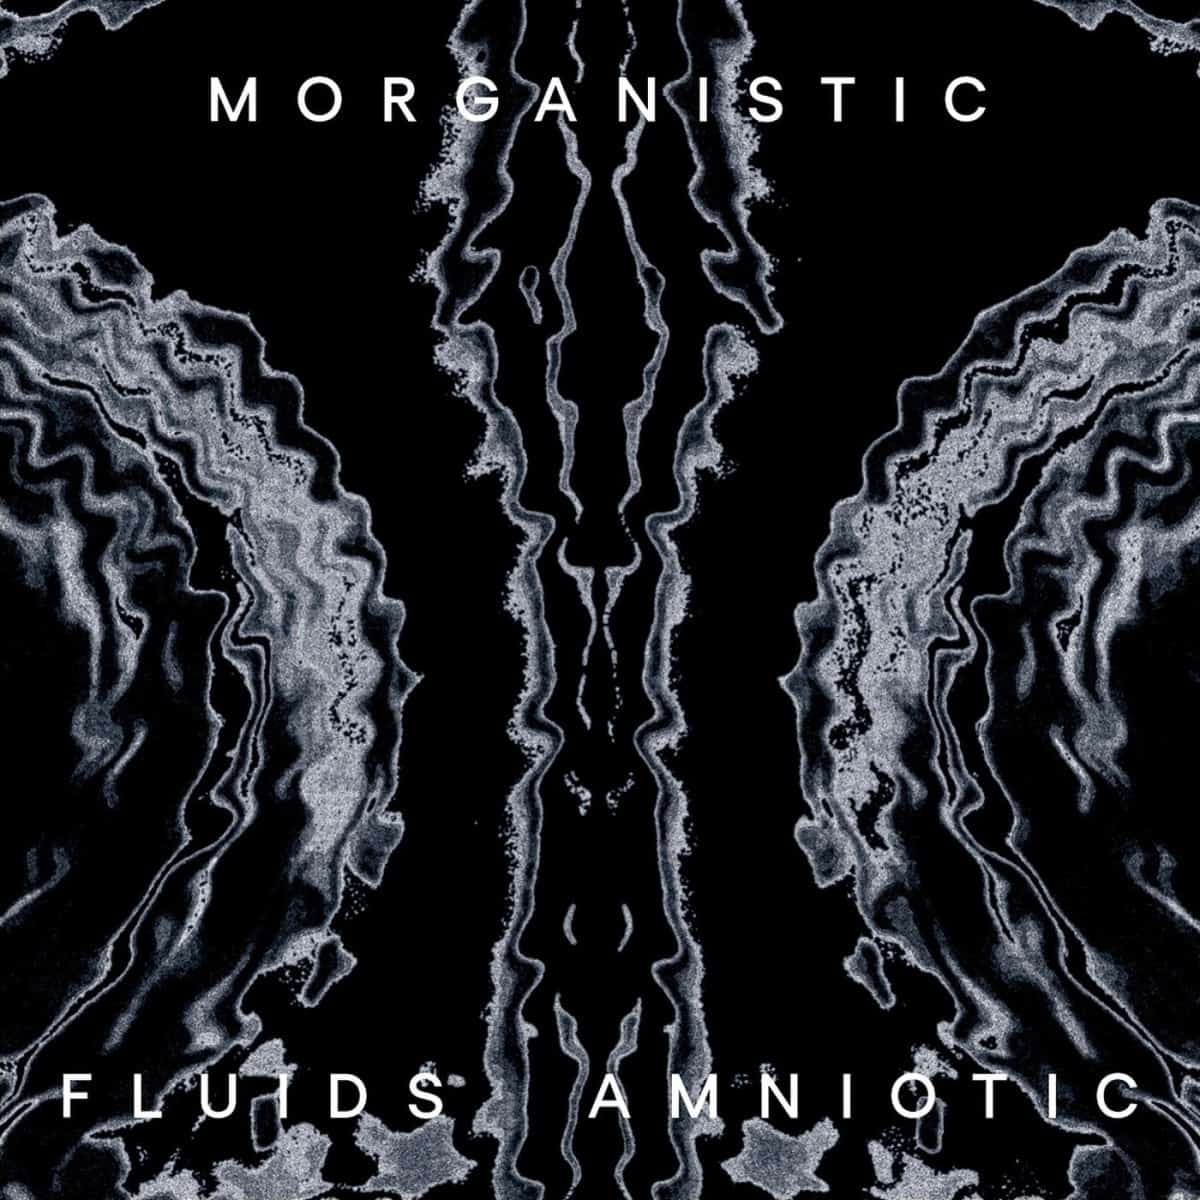 JUST IN: Fluids Amniotic by Morganistic Remastered reissue of techno producer Luke Slaters only album as Morganistic. normanrecords.com/records/184313…